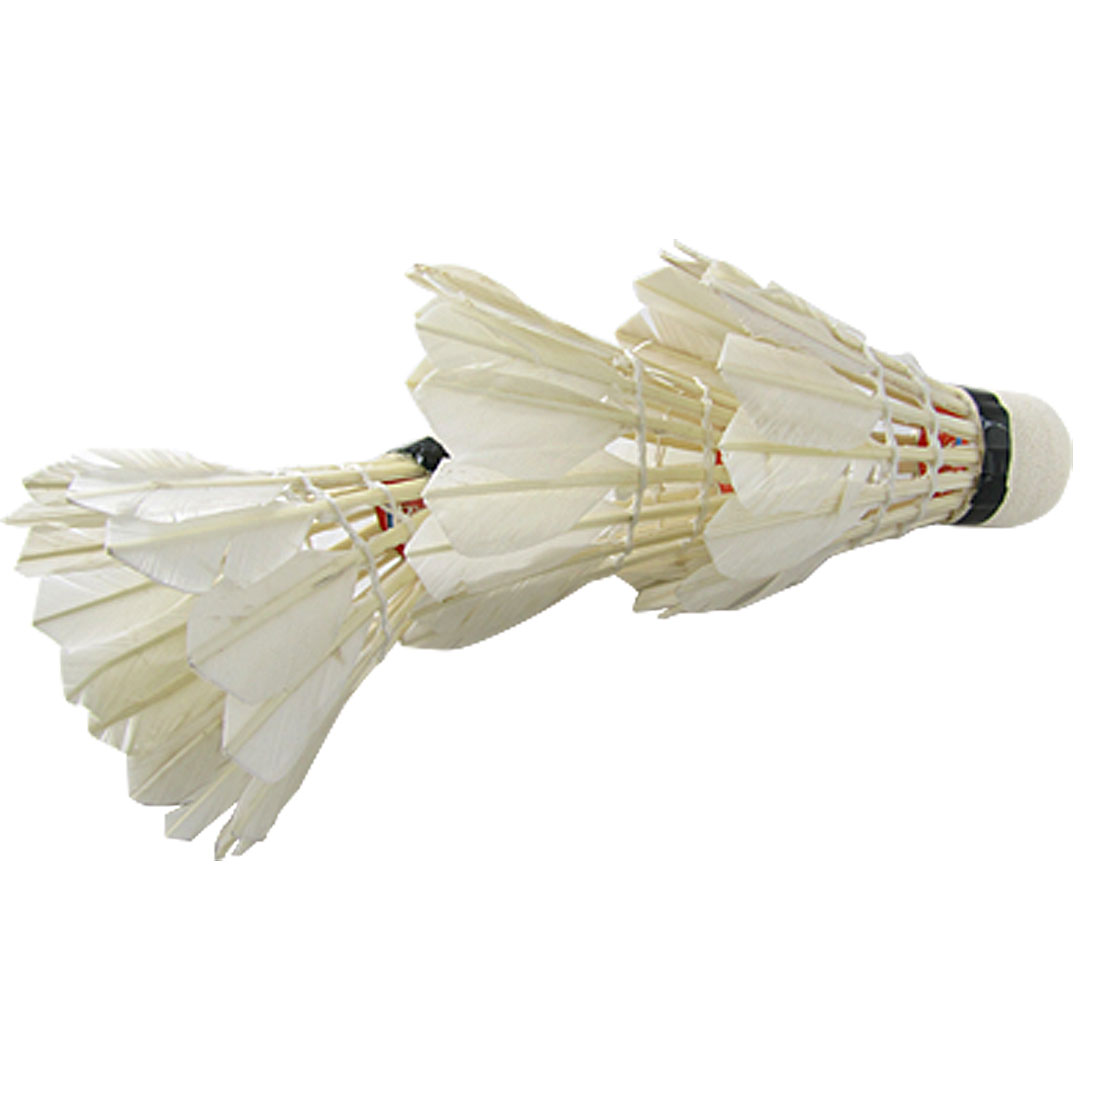 SZ-LGFM-White Goose Feather Badminton Shuttlecock 3pcs W Carboard Cylinder